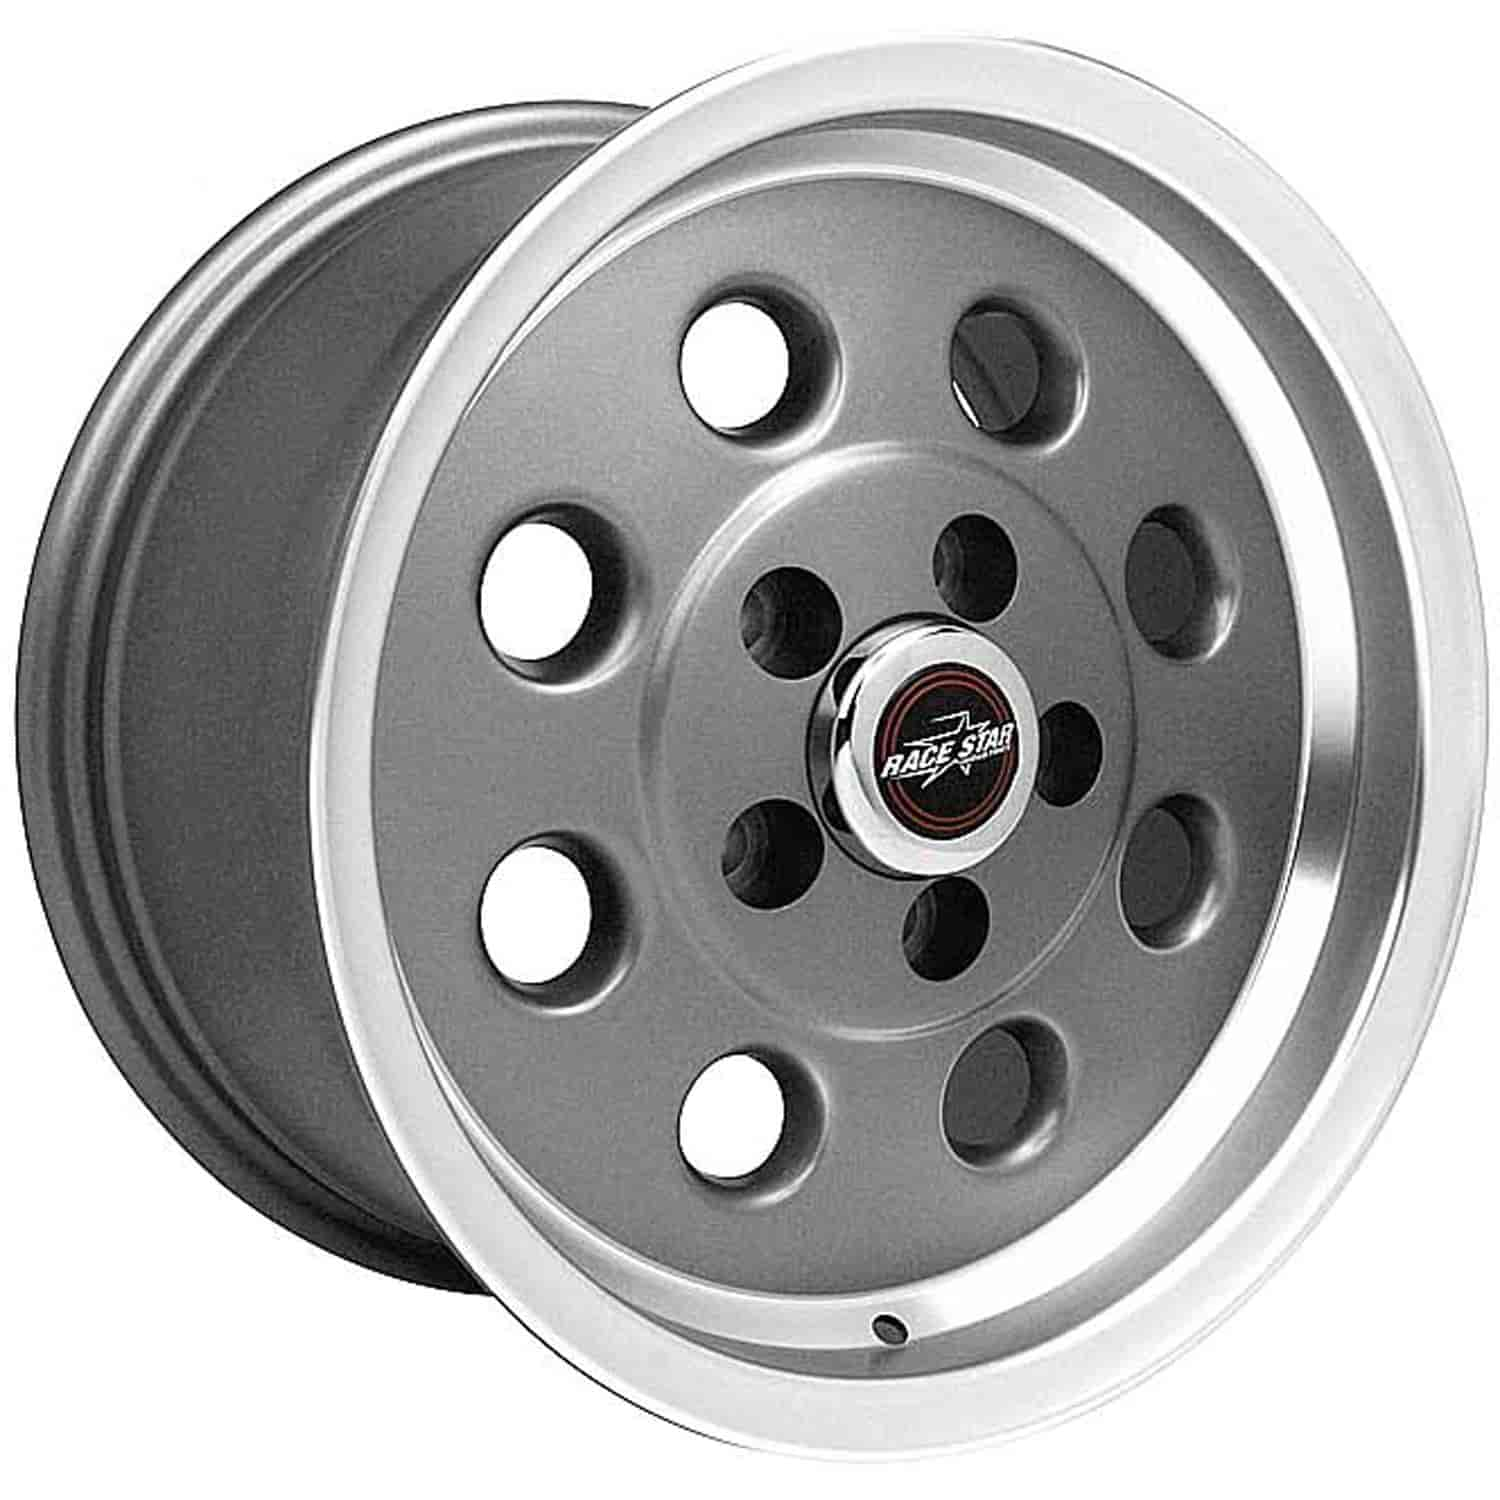 Race Star Wheels 82-580148GP